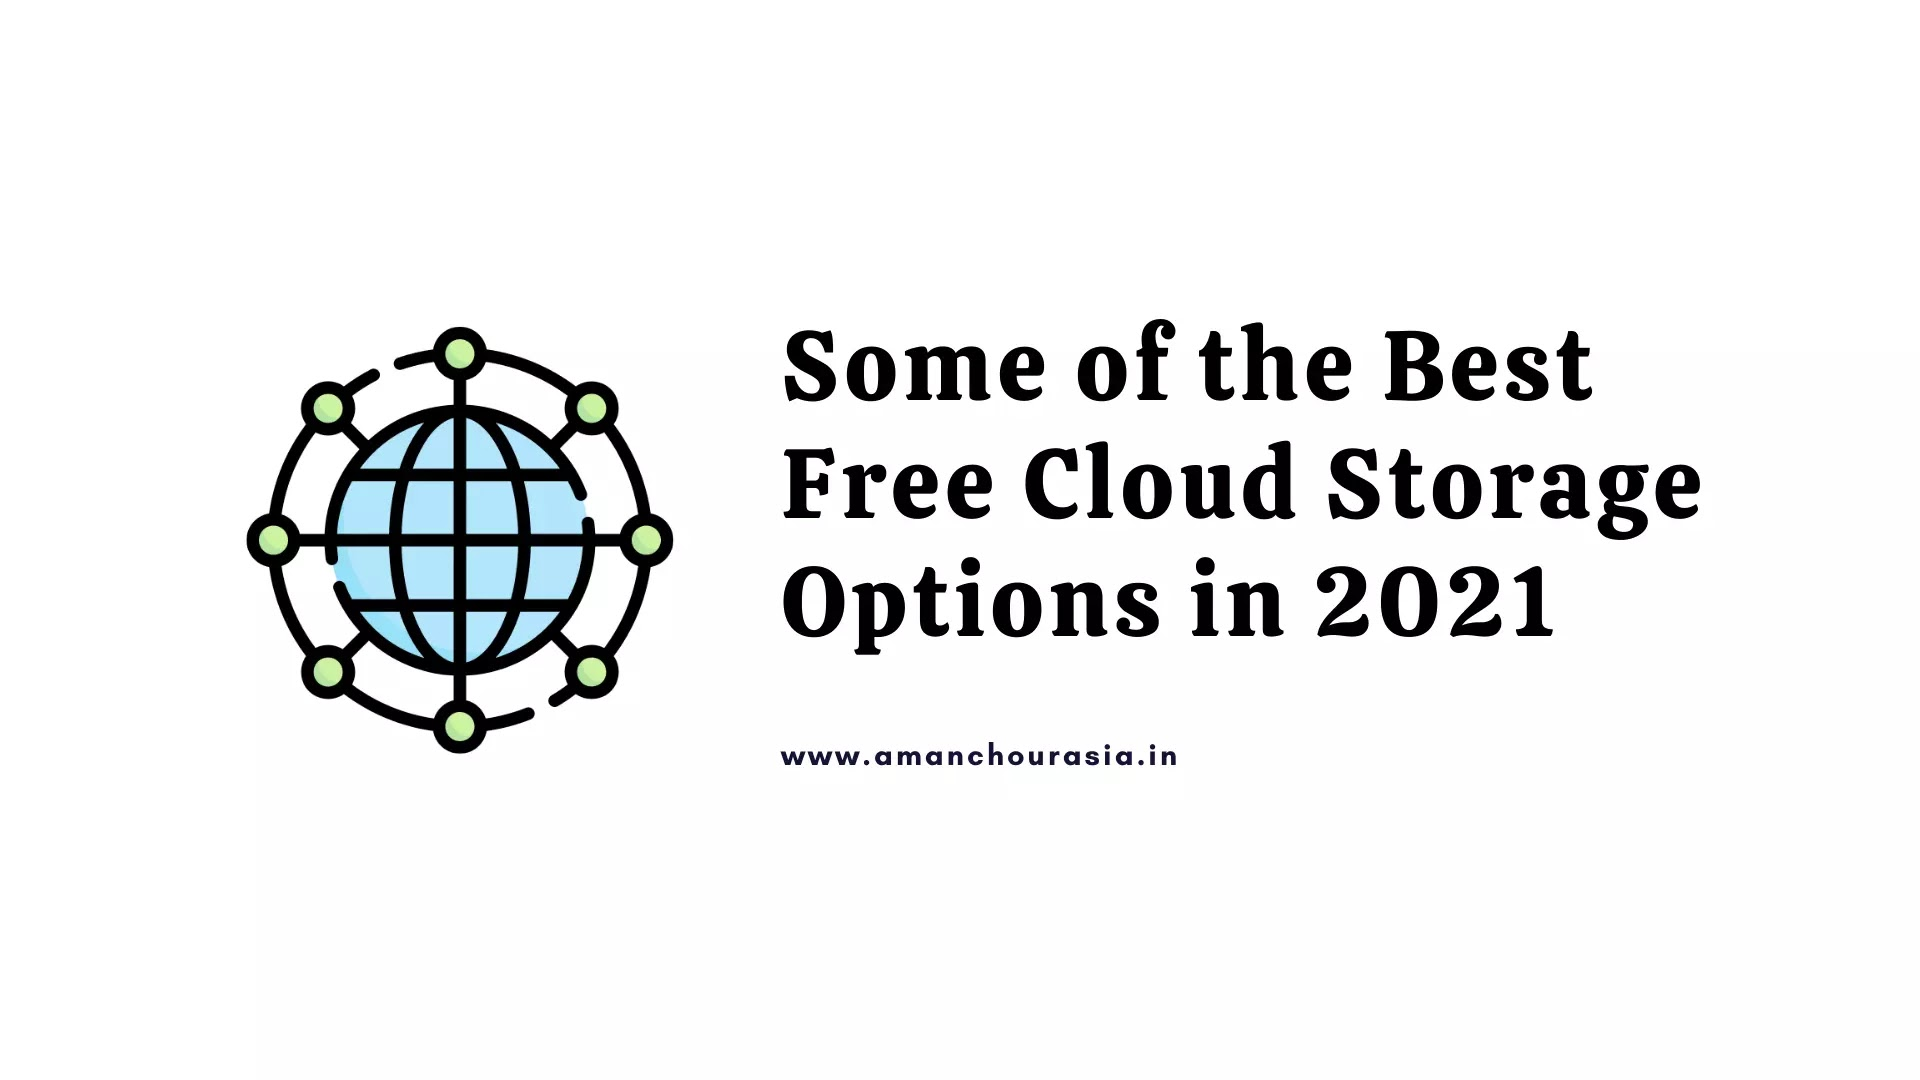 Some of the Best Free Cloud Storage Options in 2021